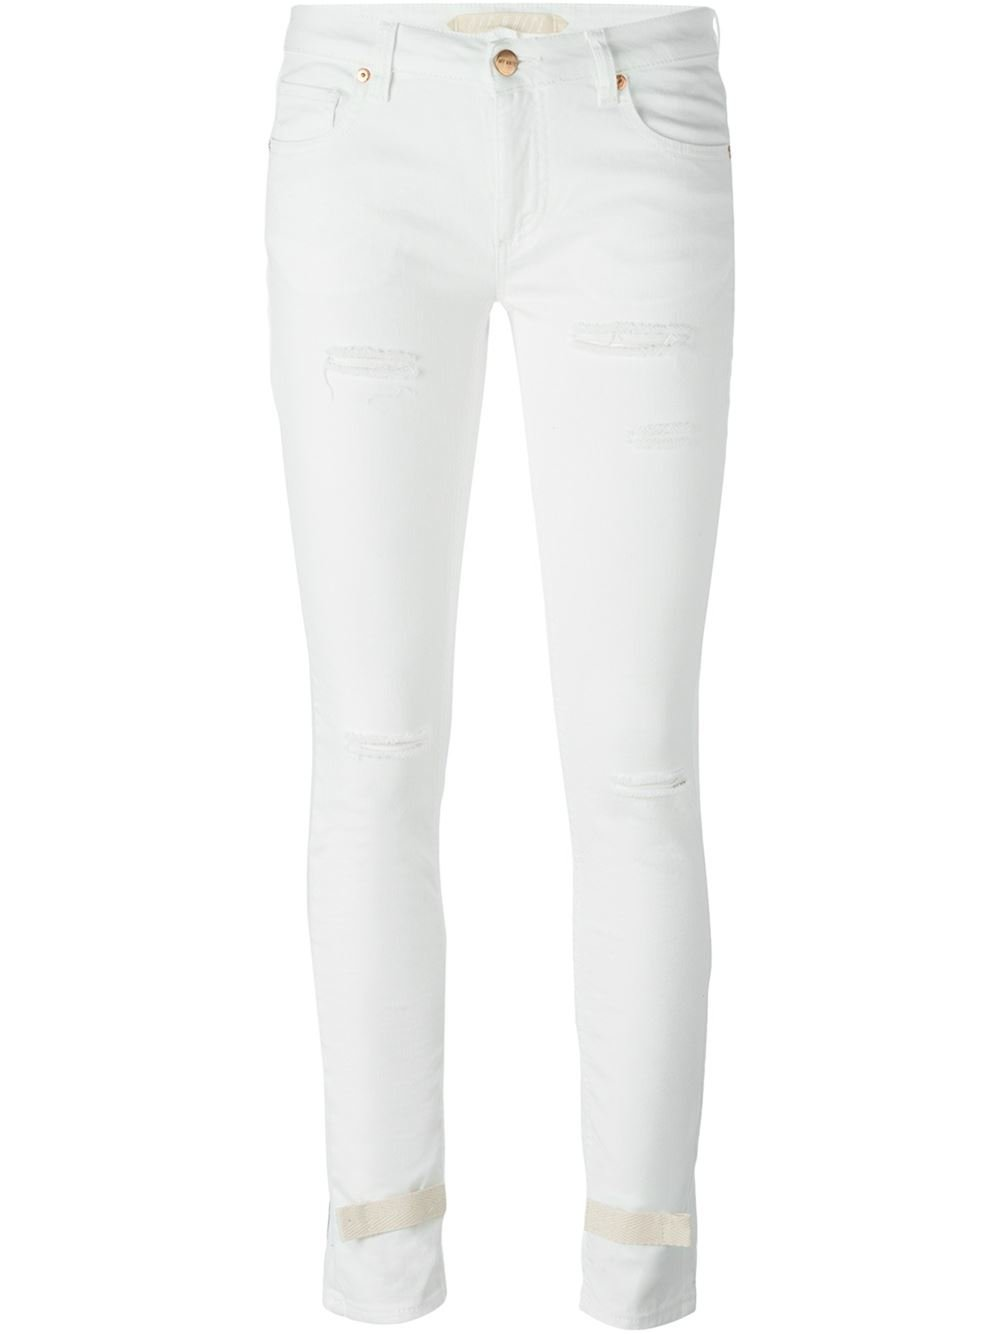 Off-white c/o virgil abloh Striped Detail Skinny Jeans in White | Lyst